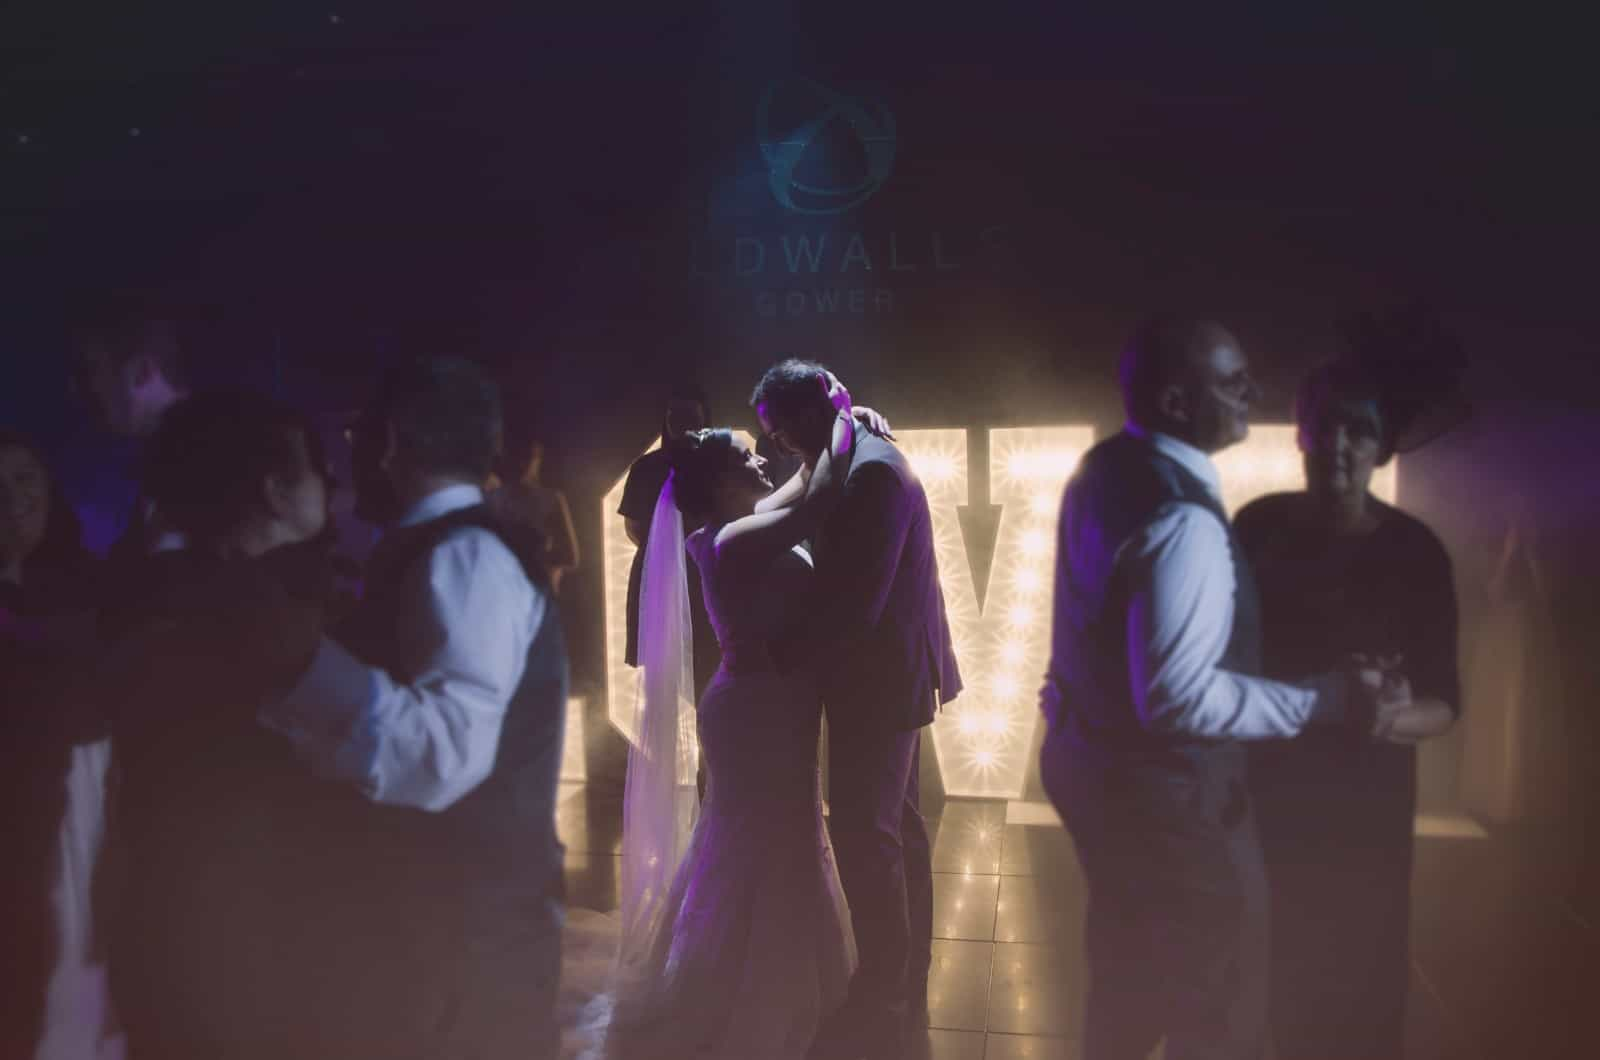 Bride & Groom stood on dance floor looking at  each other with guests dancing around them